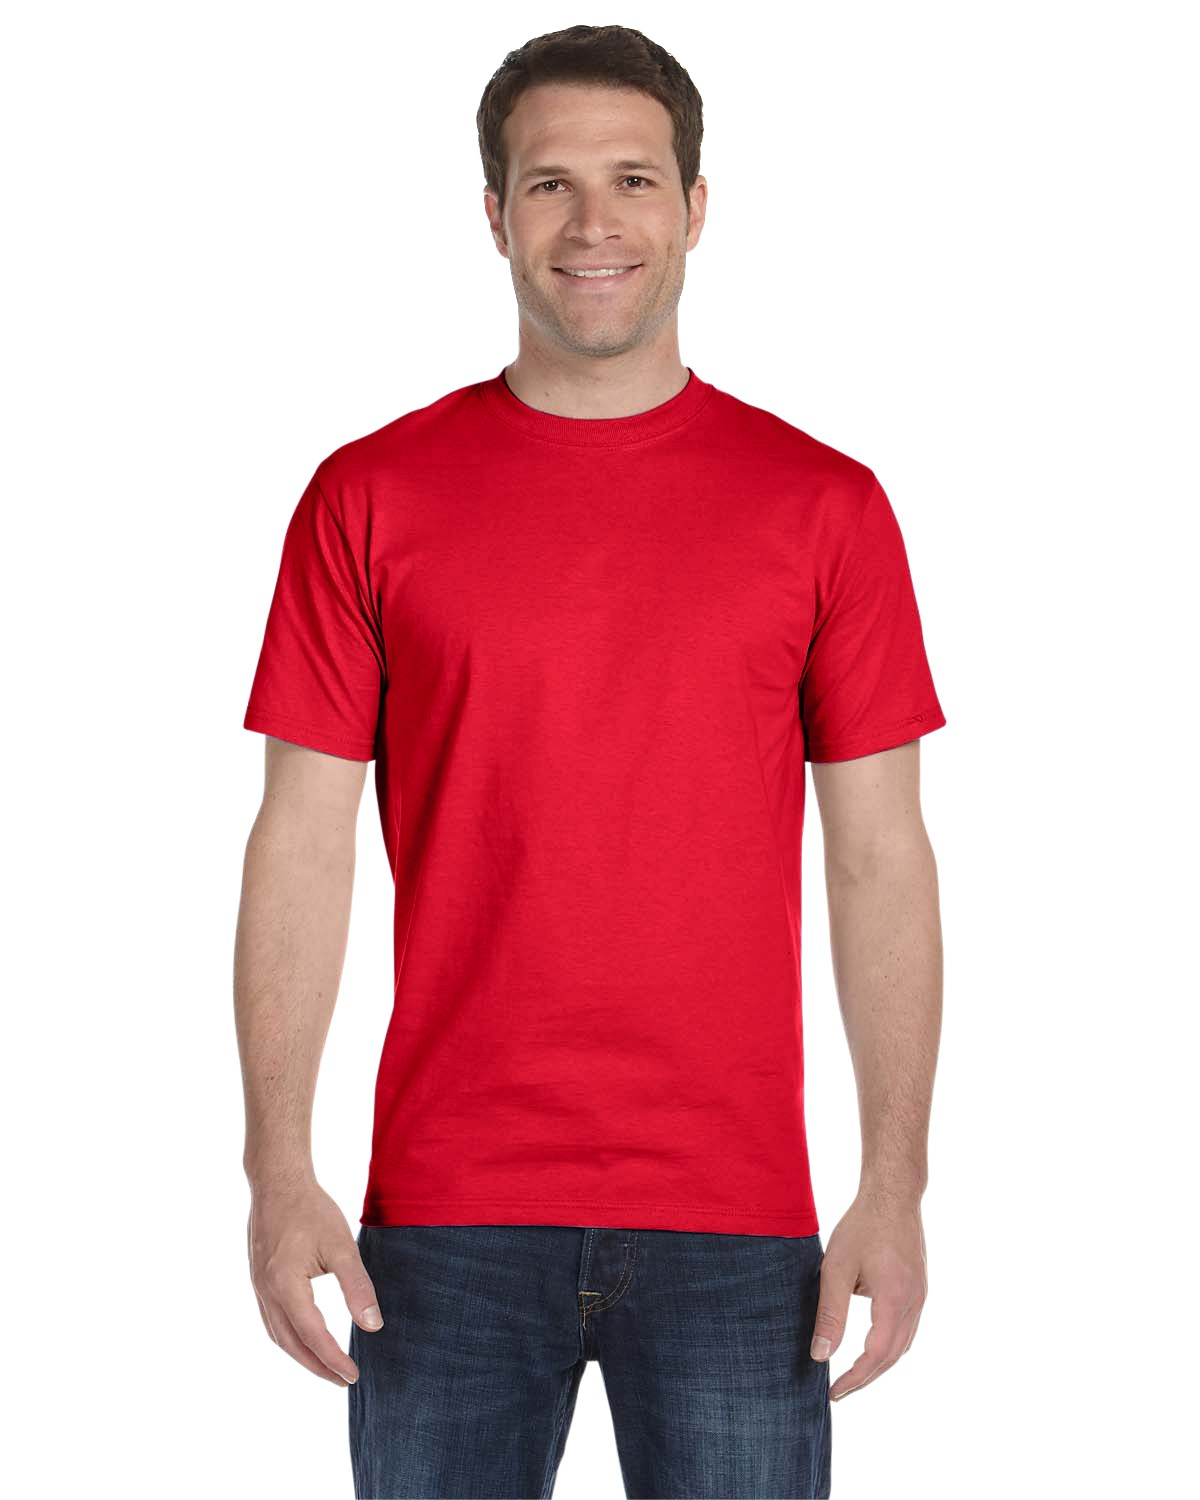 5280 Hanes Athletic Red